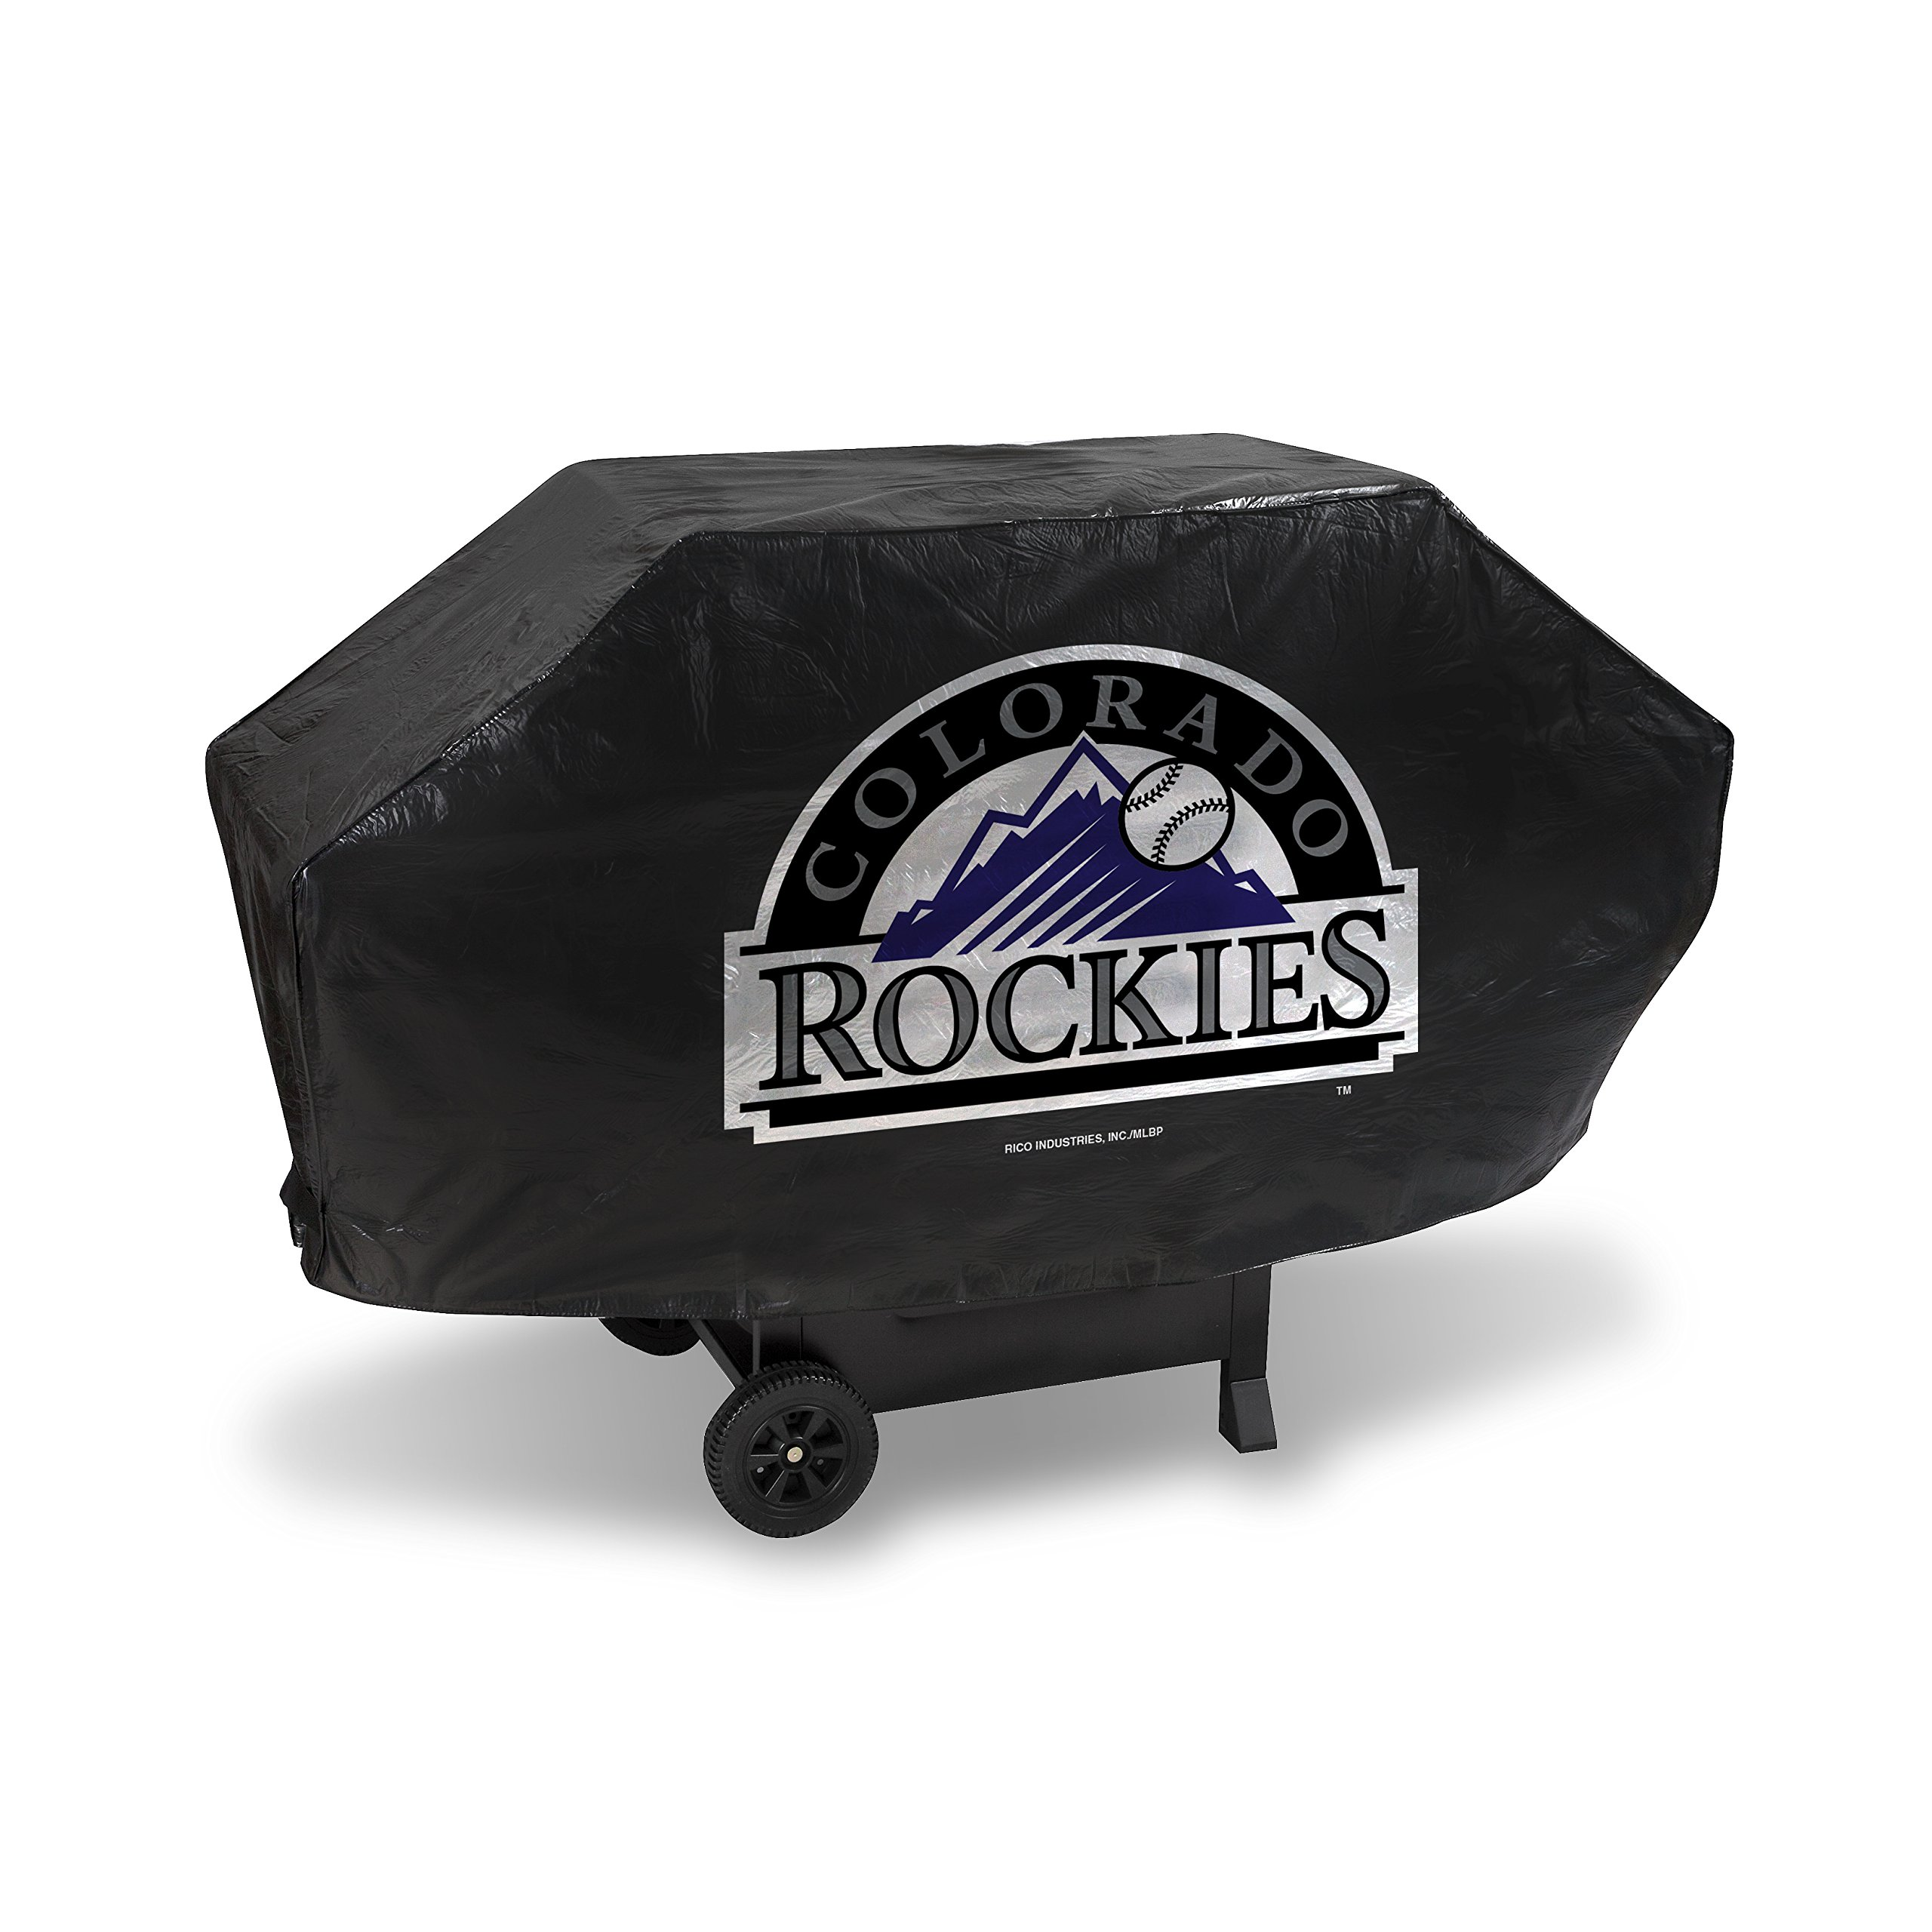 MLB Colorado Rockies Deluxe Grill Cover, Black, 68 x 21 x 35